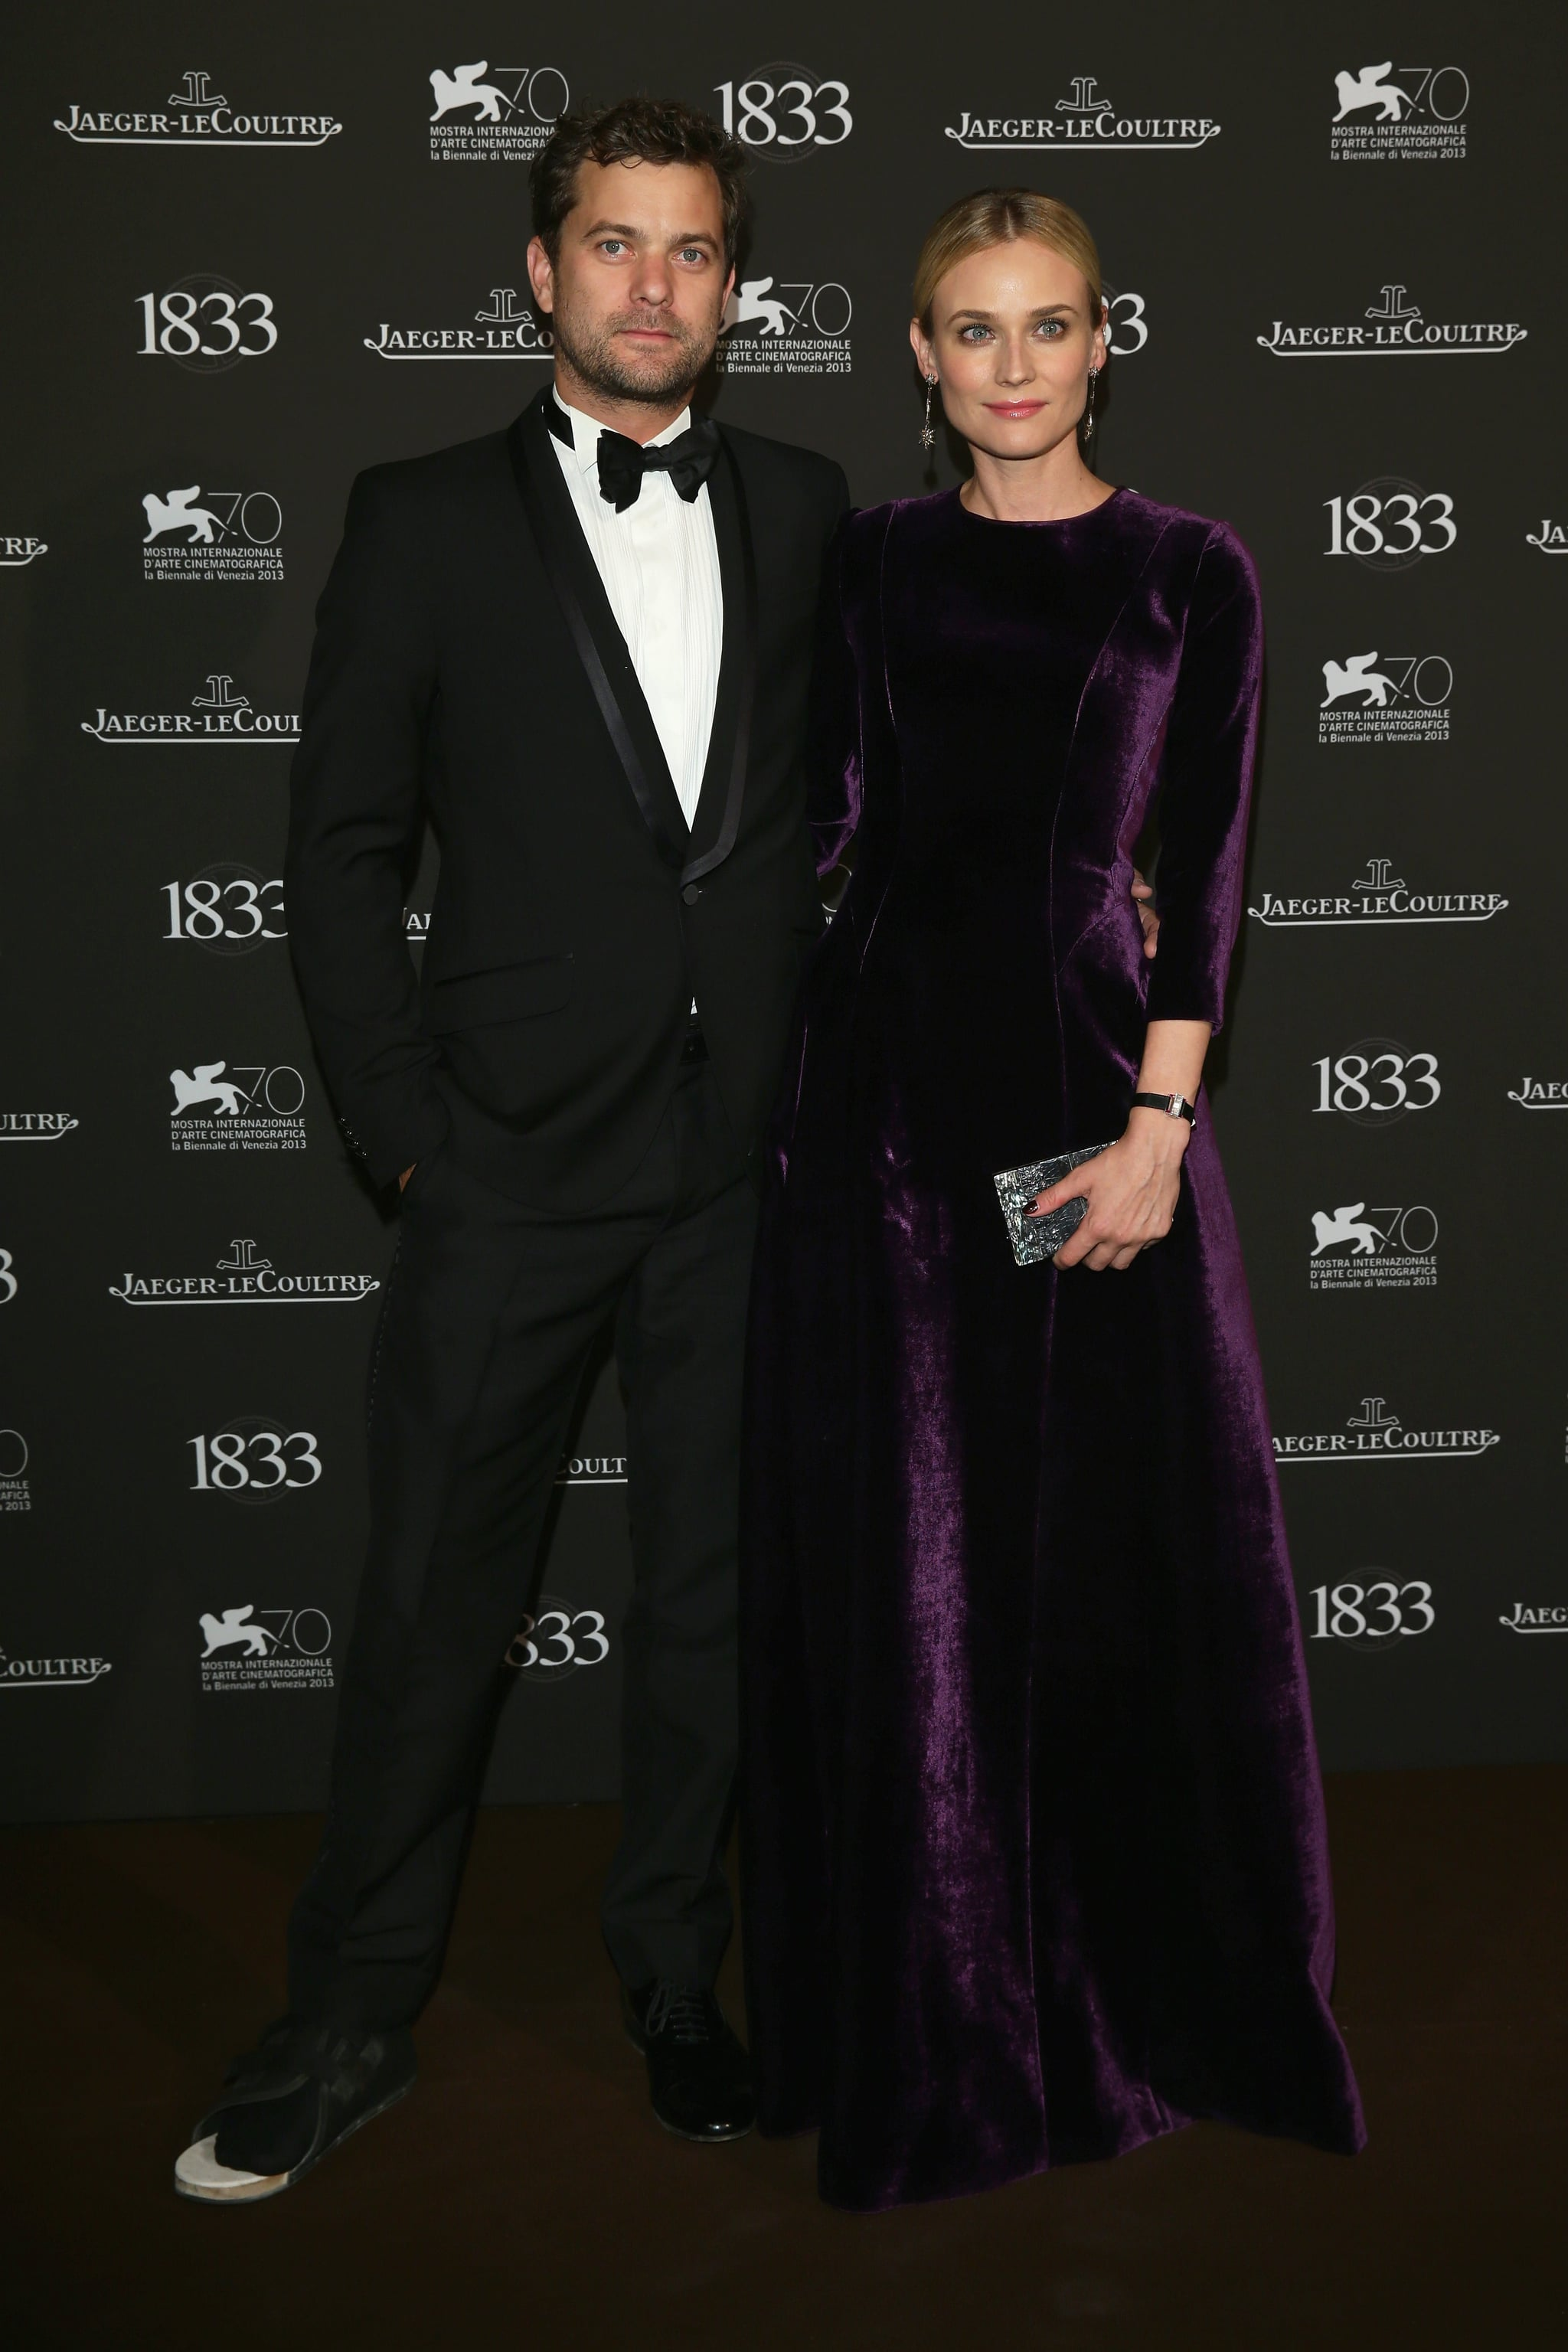 Joshua Jackson and Diane Kruger attended a gala dinner at the Venice Film Festival.